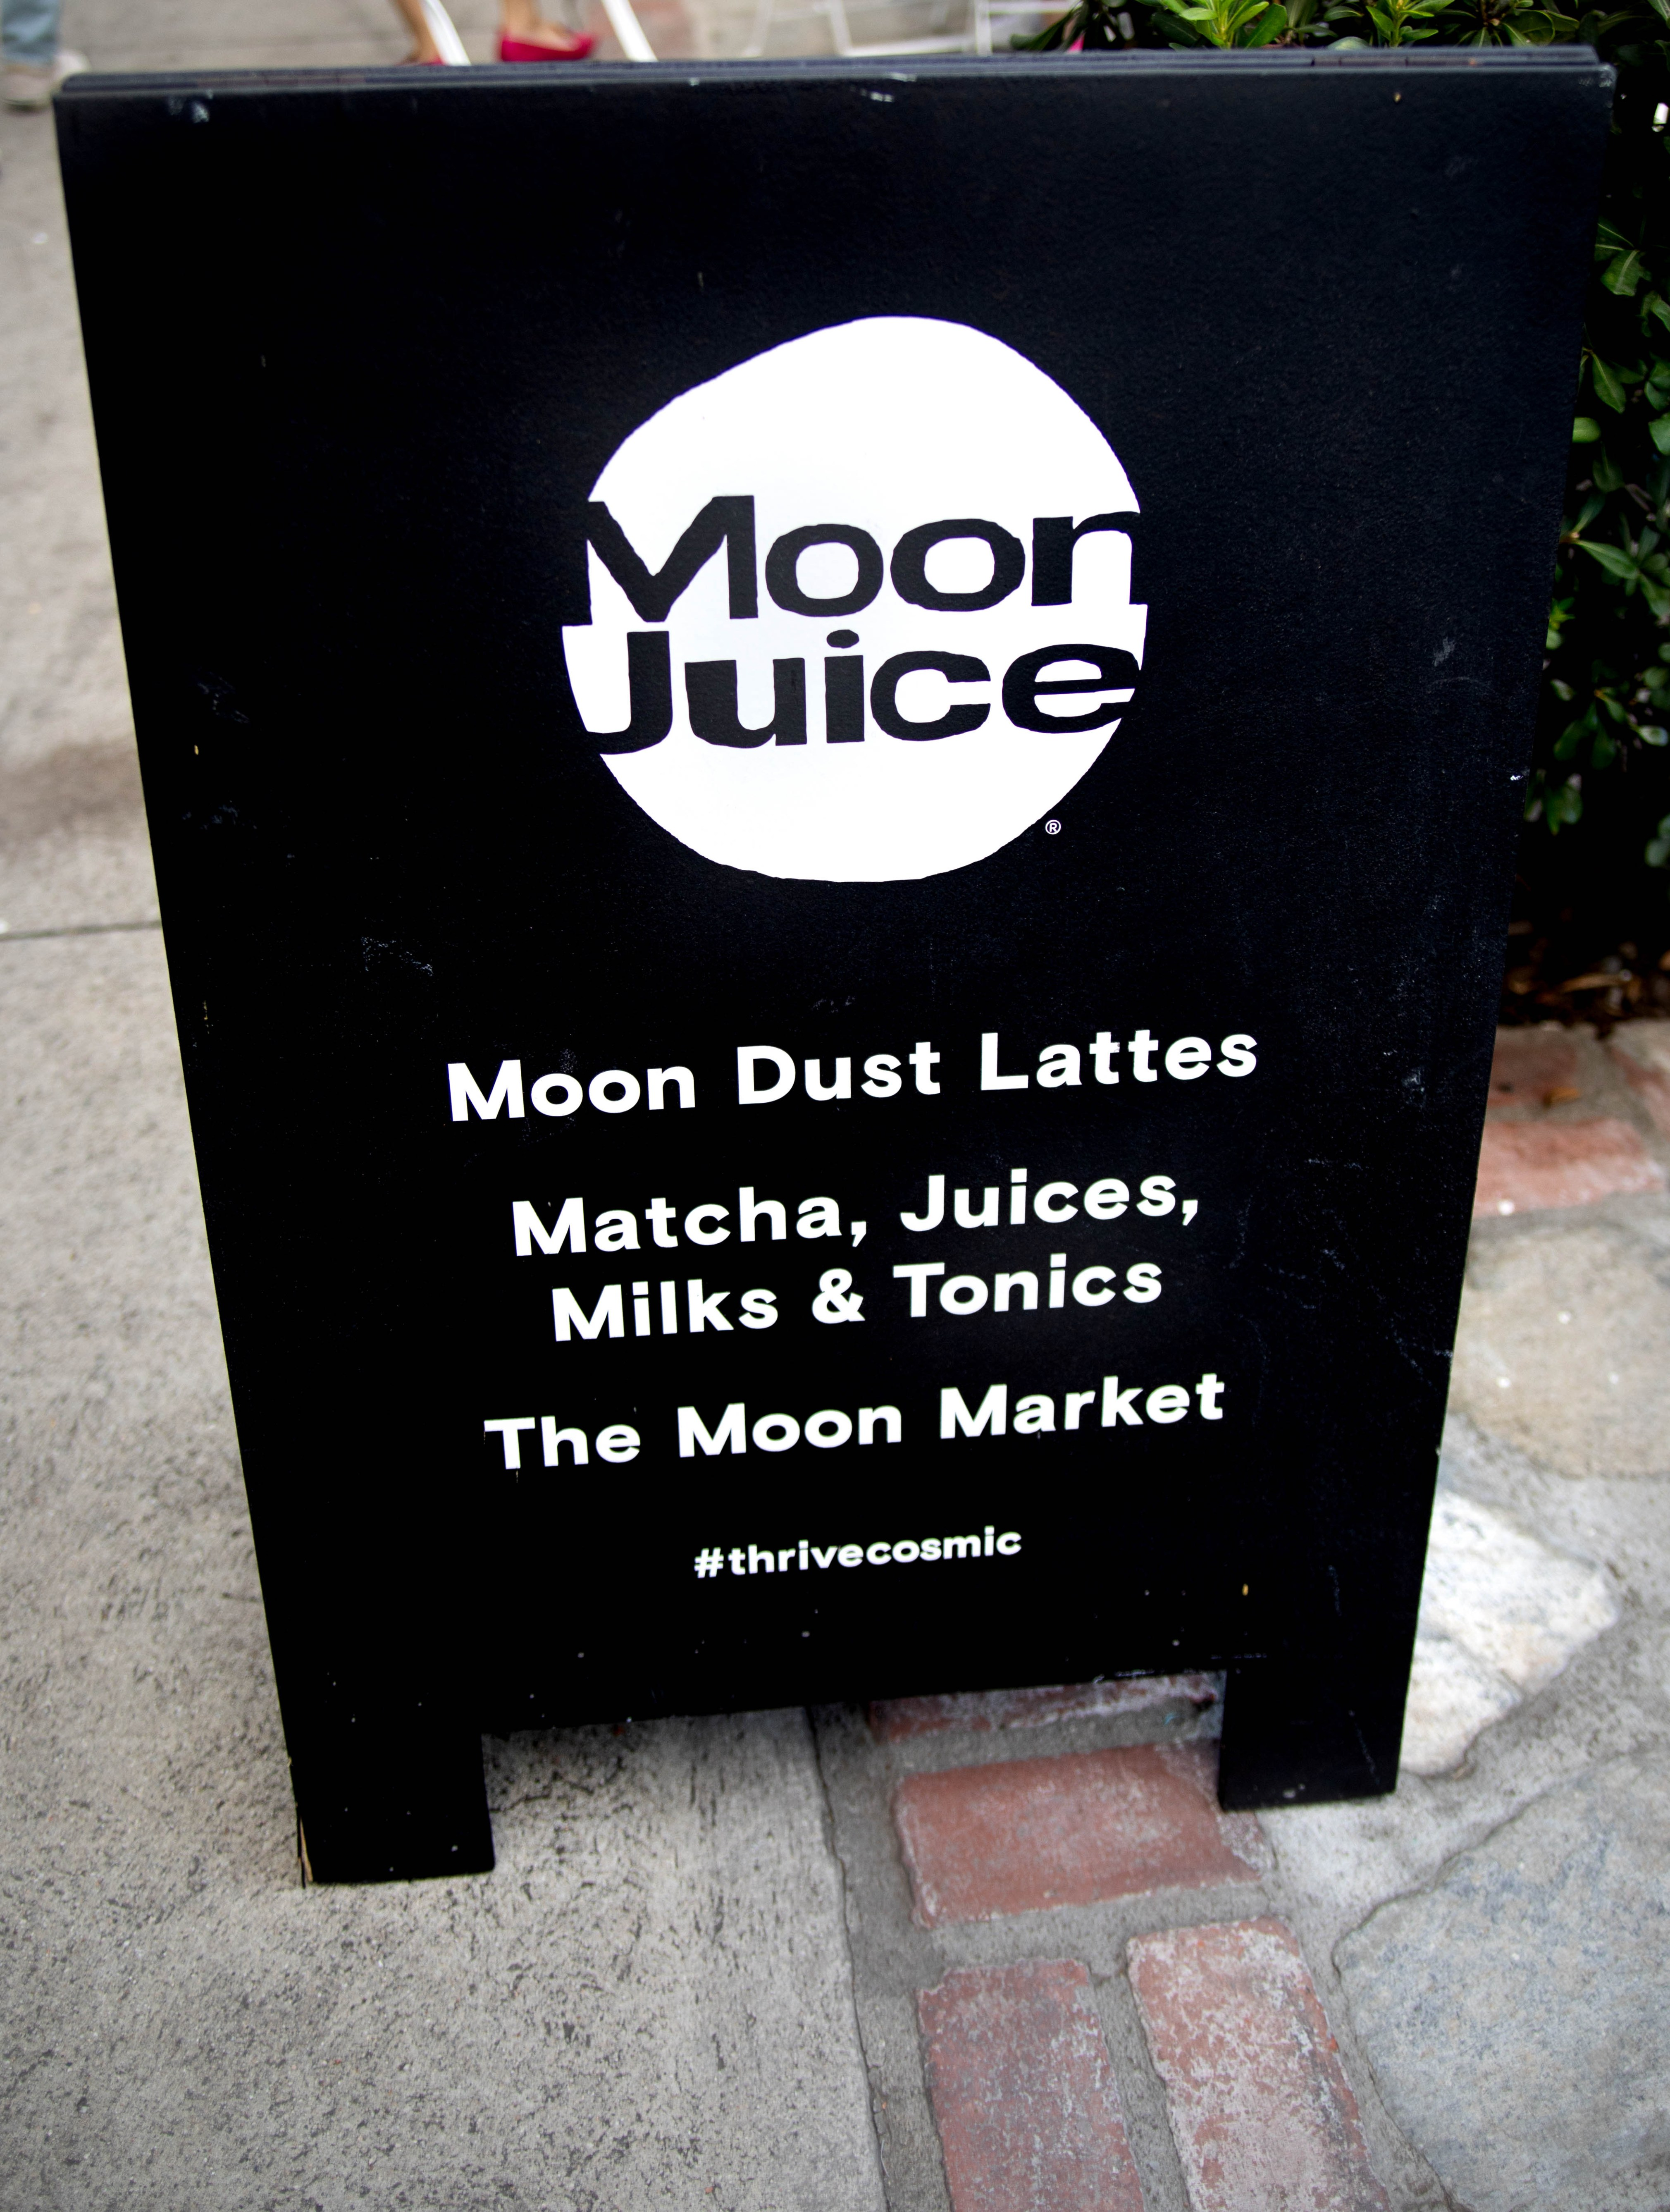 Moon Juice West Hollywood, California